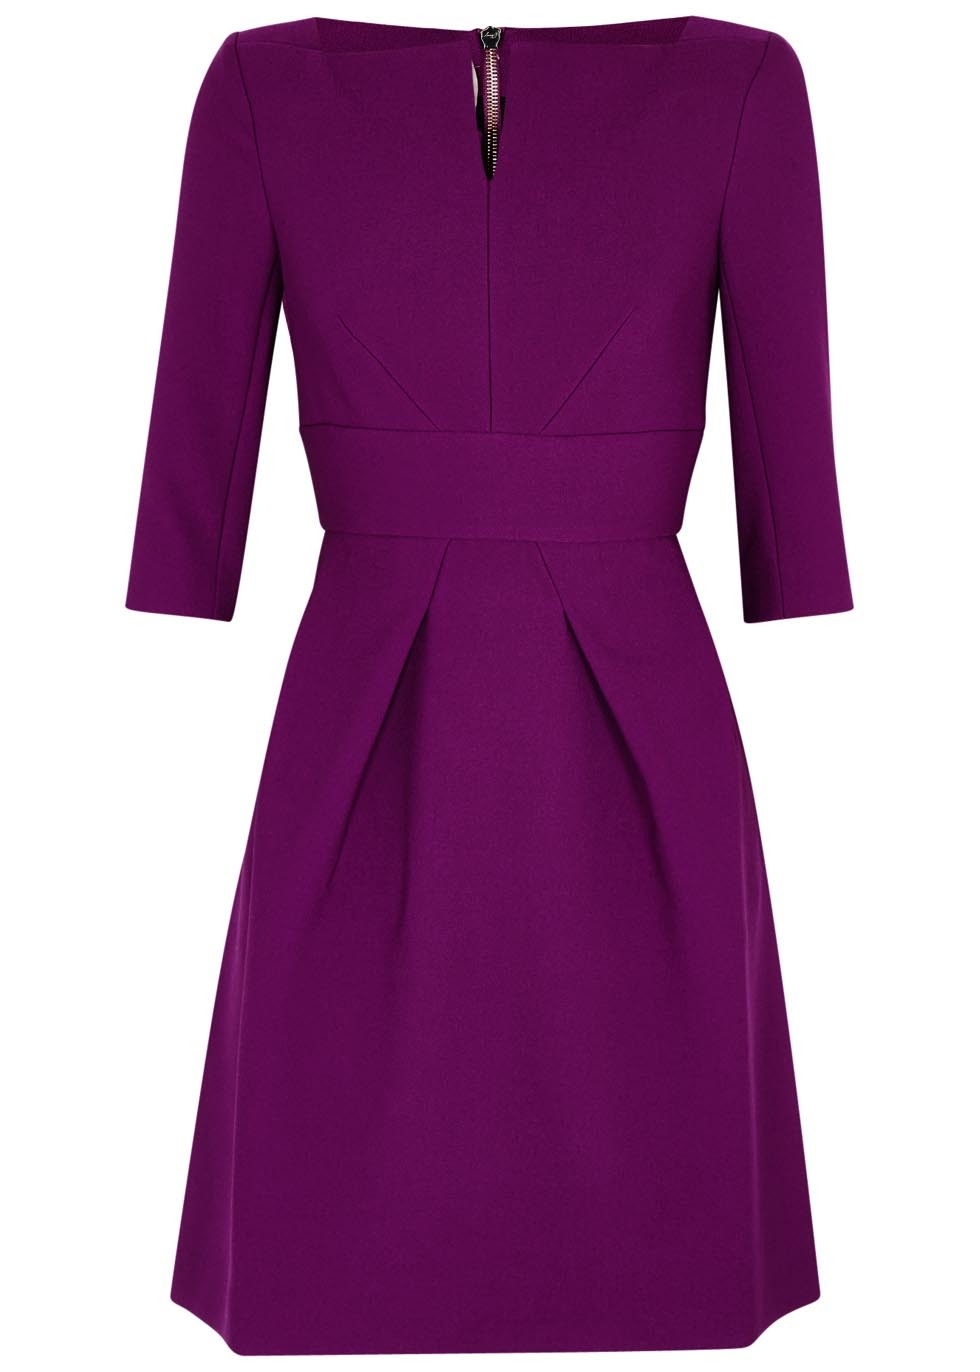 Stanhope Grape Dress - neckline: v-neck; pattern: plain; predominant colour: purple; occasions: evening; length: just above the knee; fit: fitted at waist & bust; style: fit & flare; fibres: polyester/polyamide - stretch; sleeve length: 3/4 length; sleeve style: standard; texture group: crepes; pattern type: fabric; season: s/s 2016; wardrobe: event